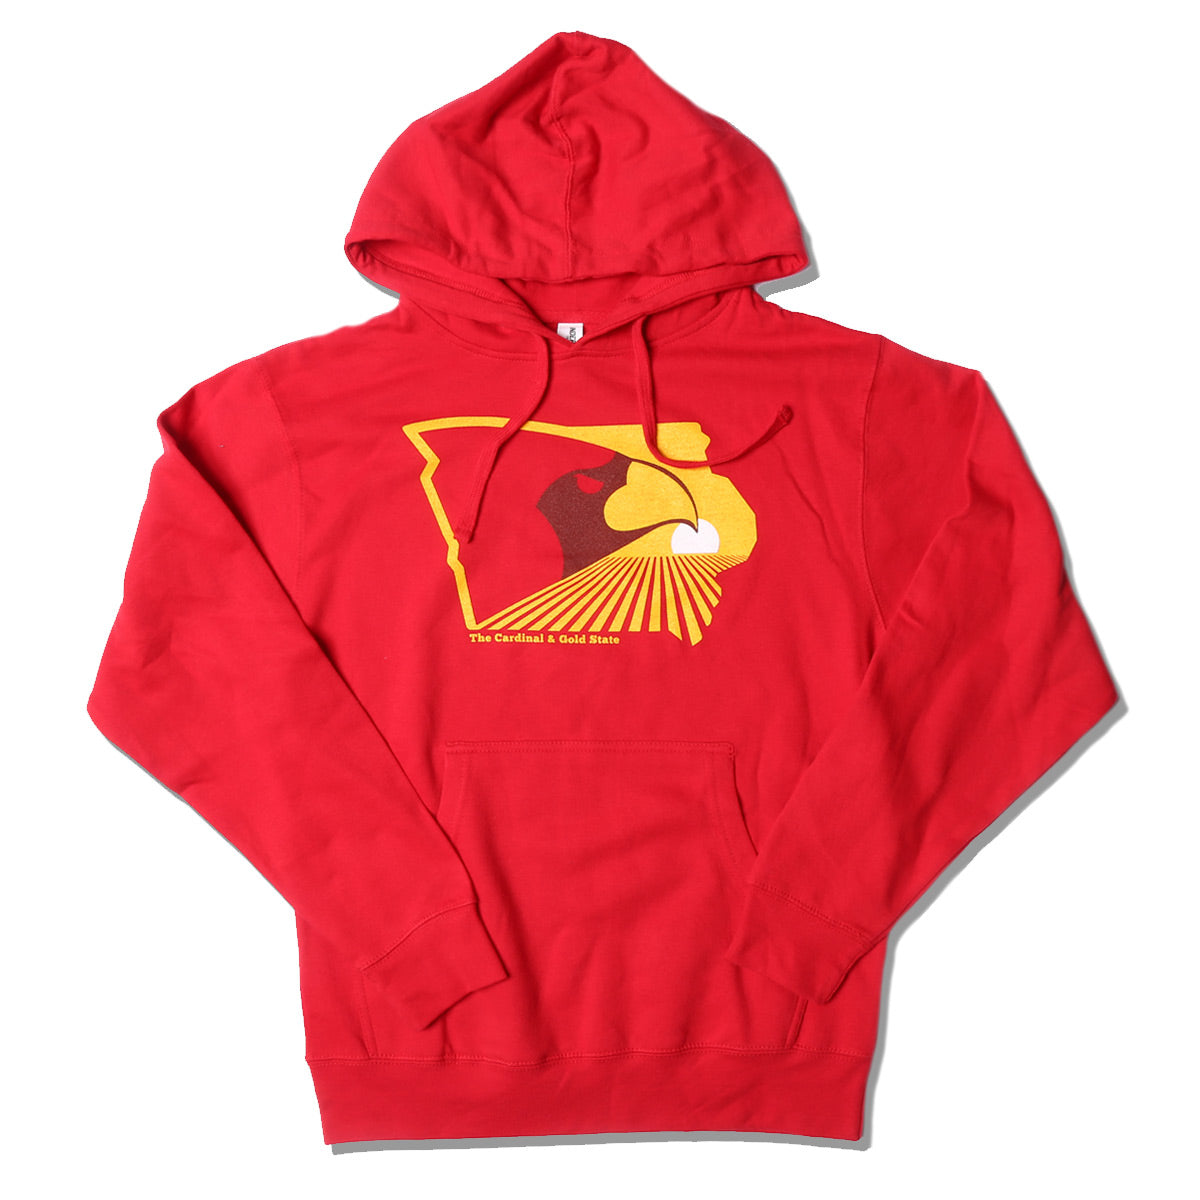 The Cardinal & Gold State Hooded Sweatshirt